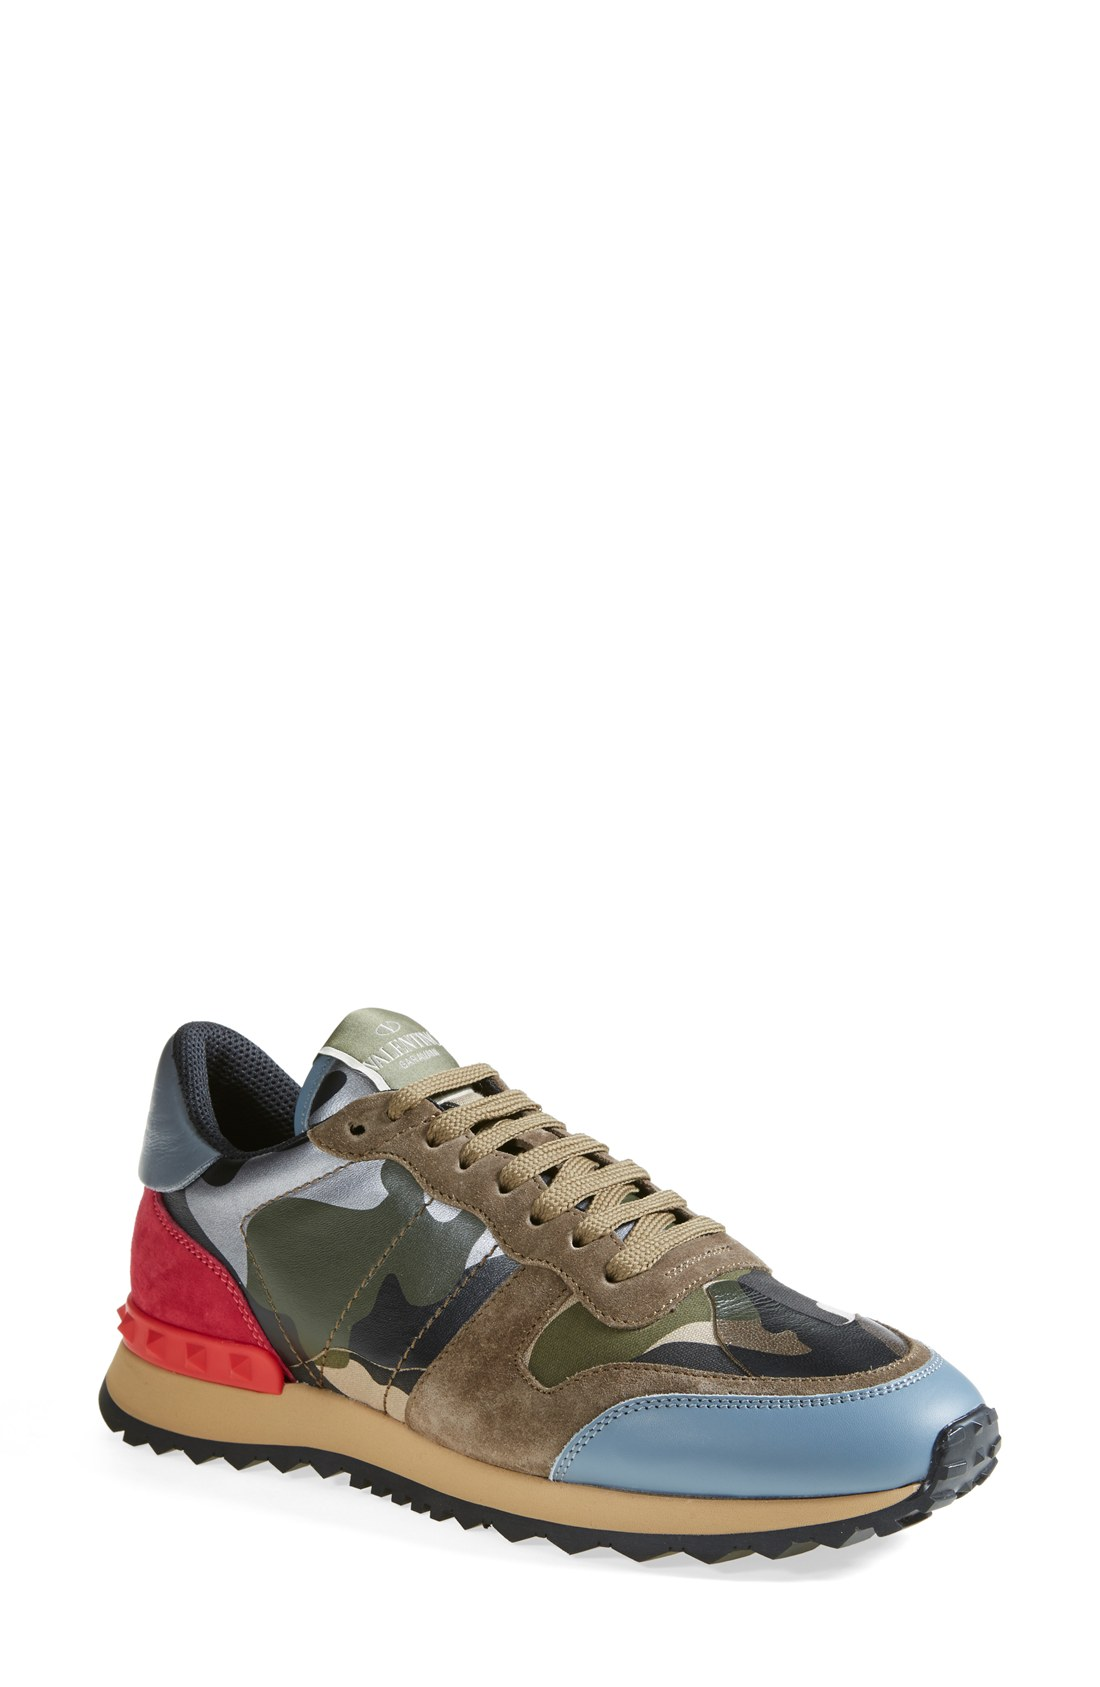 valentino valentino camouflage sneaker women sizes 8 5 8 9 5 and 10 shop it to me all. Black Bedroom Furniture Sets. Home Design Ideas